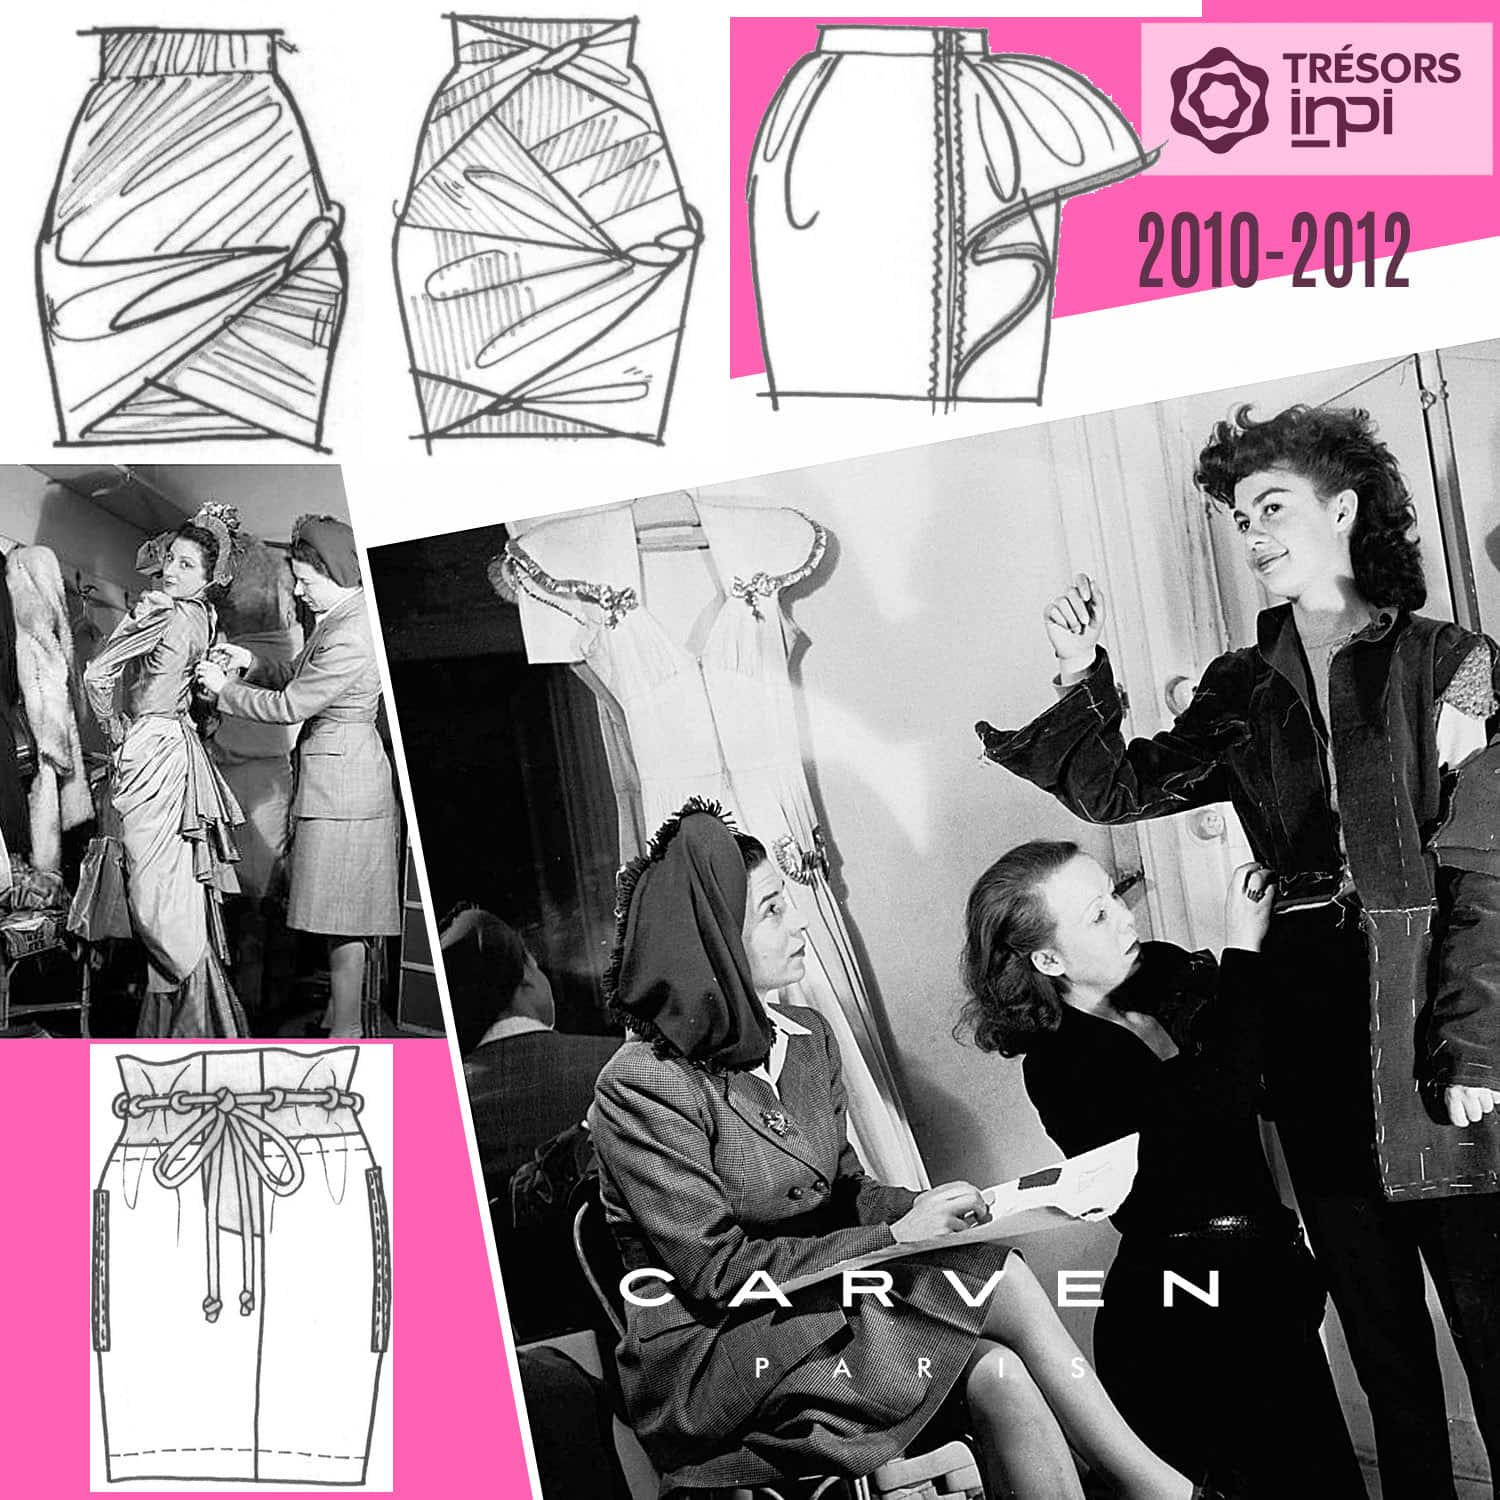 Carven 2010-2012 mini-skirts inventions - INPI archives